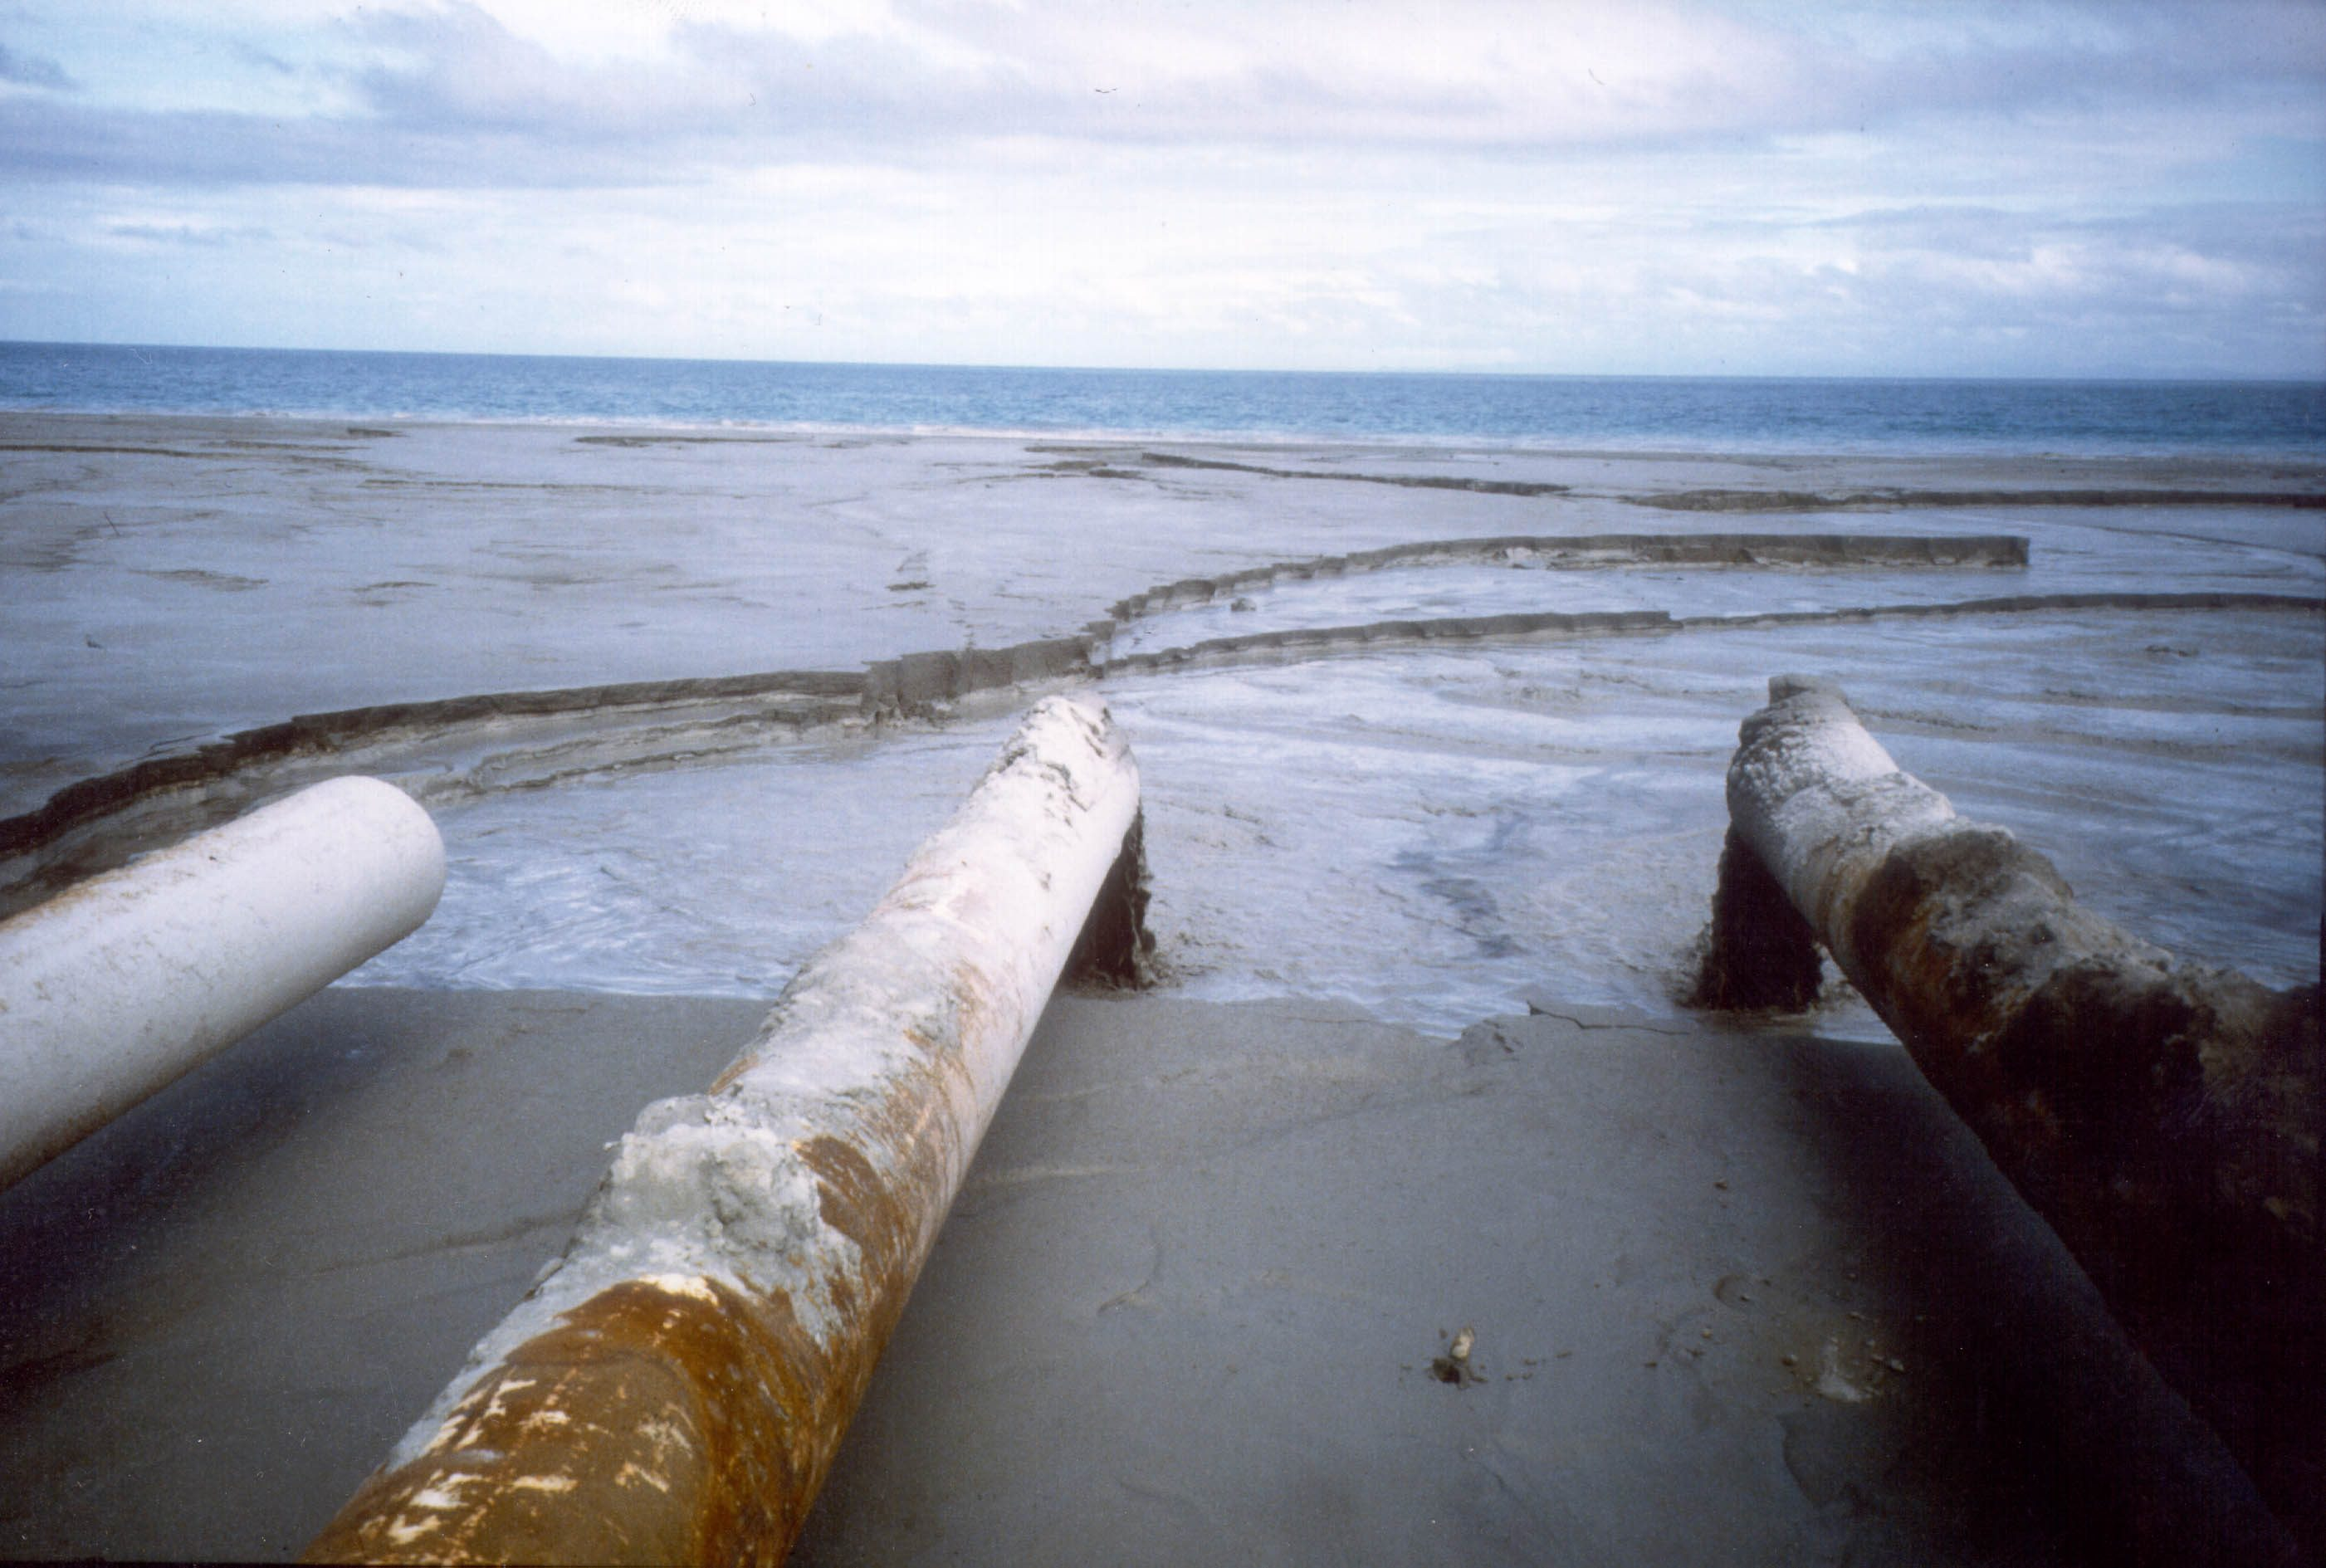 Tailings pipes from the Marcopper mine in Marinduque entering the sea at Calancan Bay.